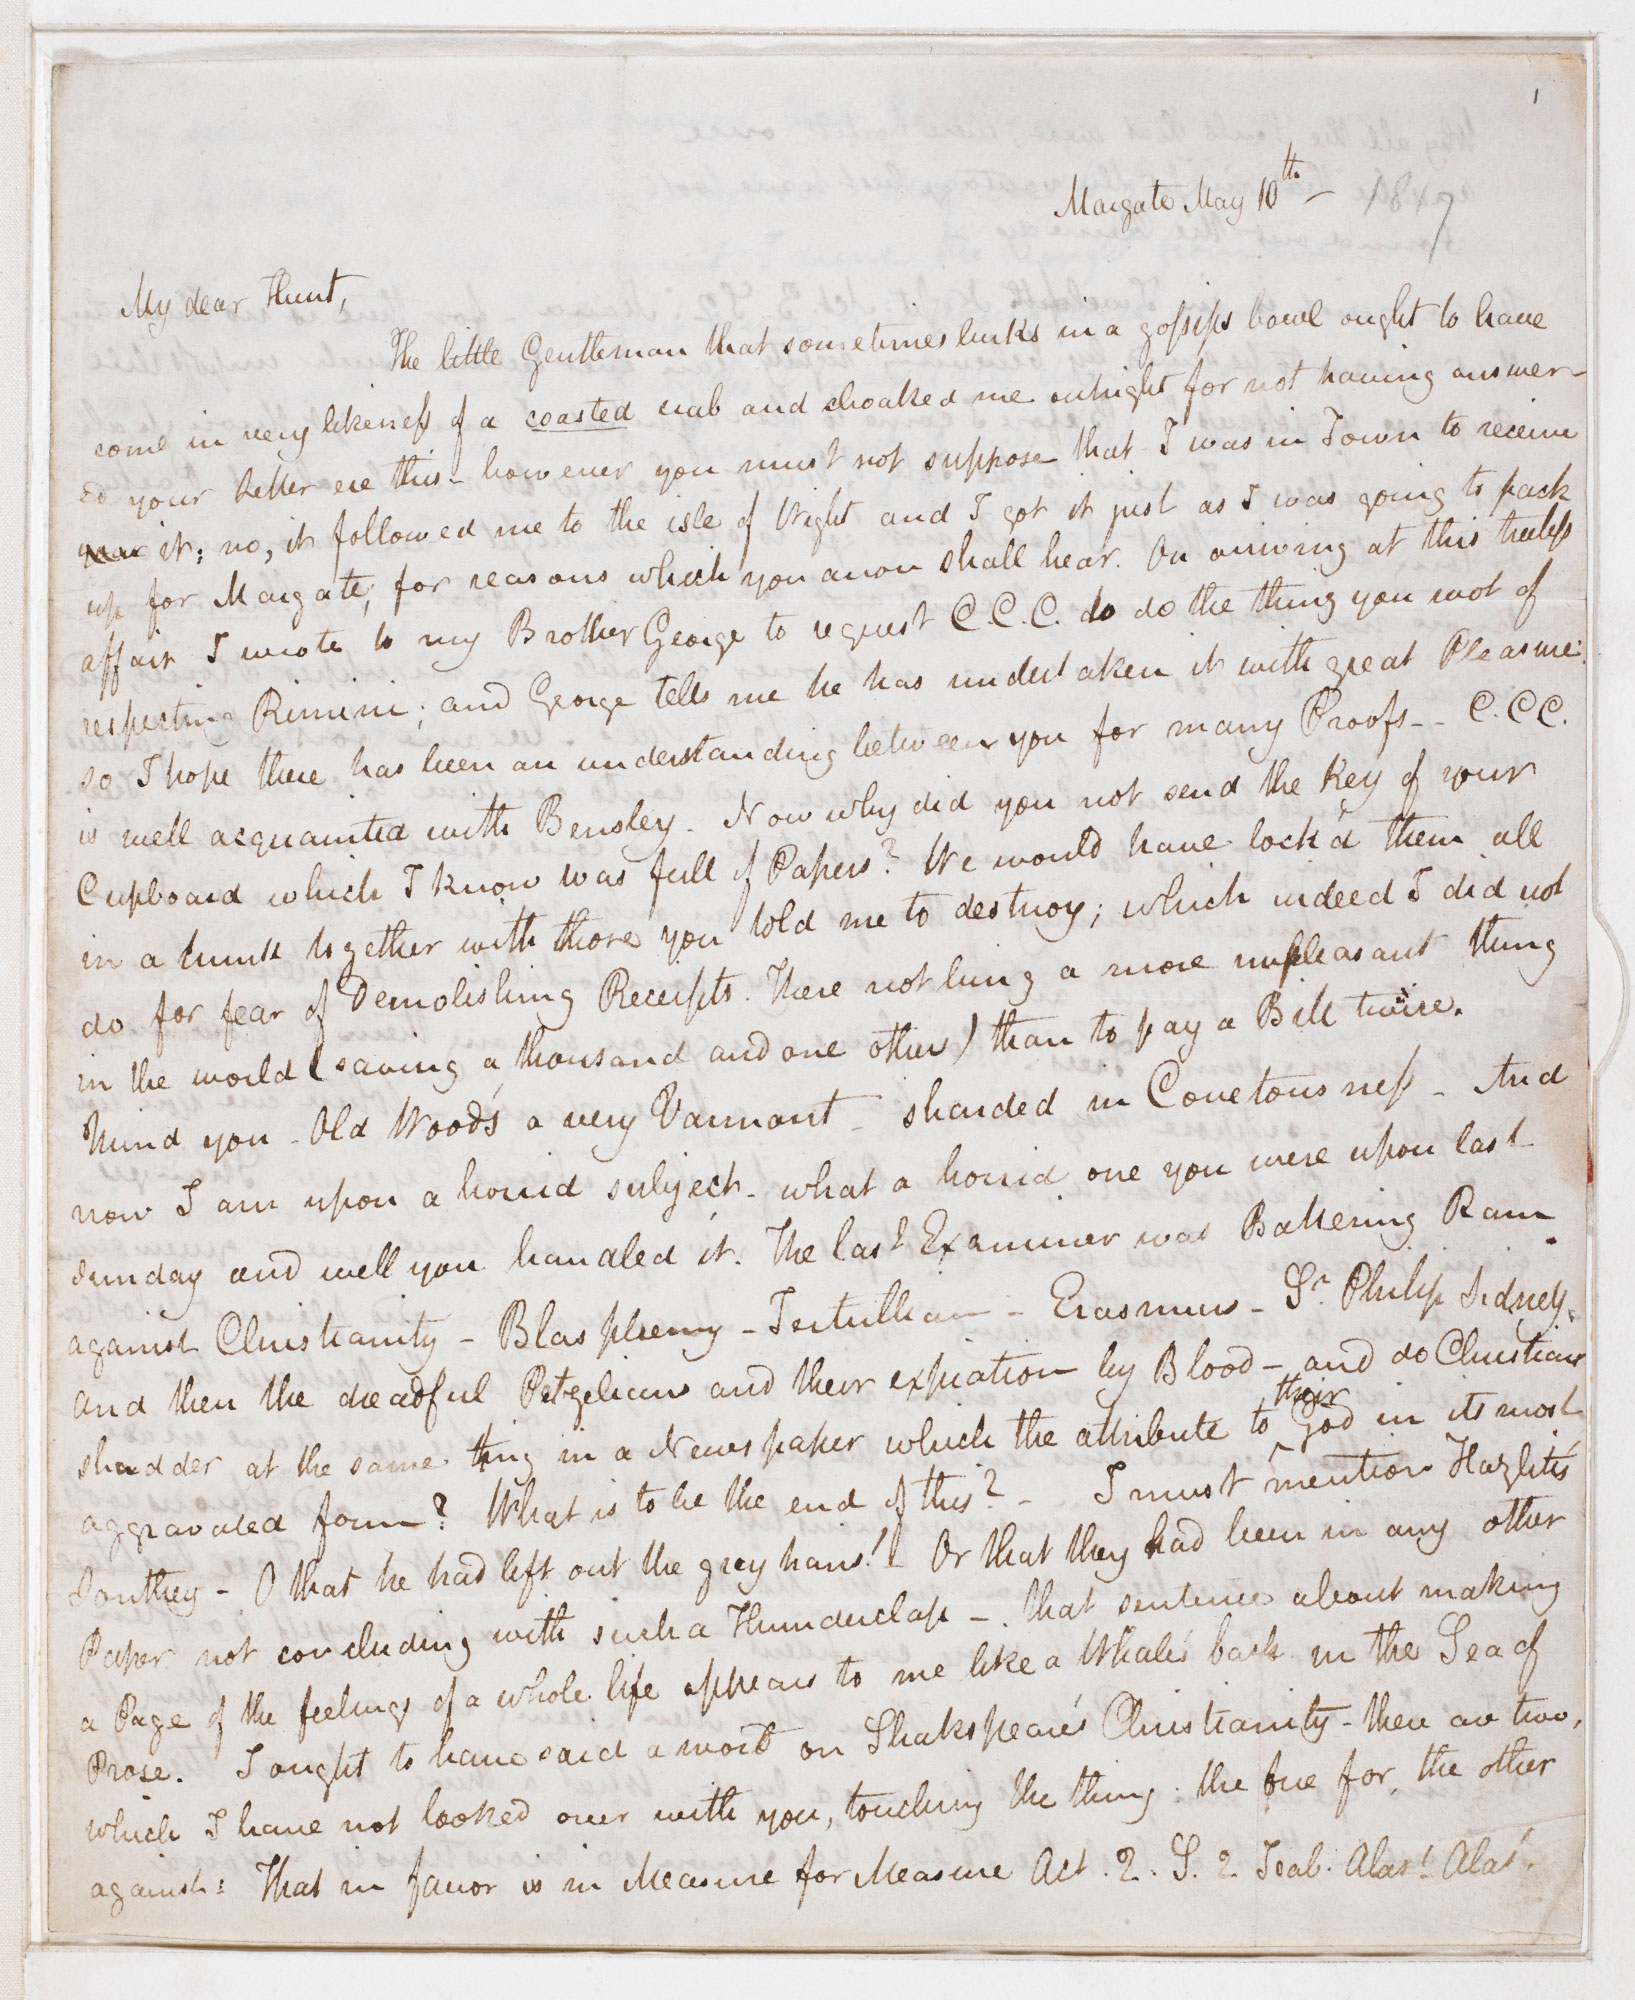 Letter from John Keats discussing the calling of the poet